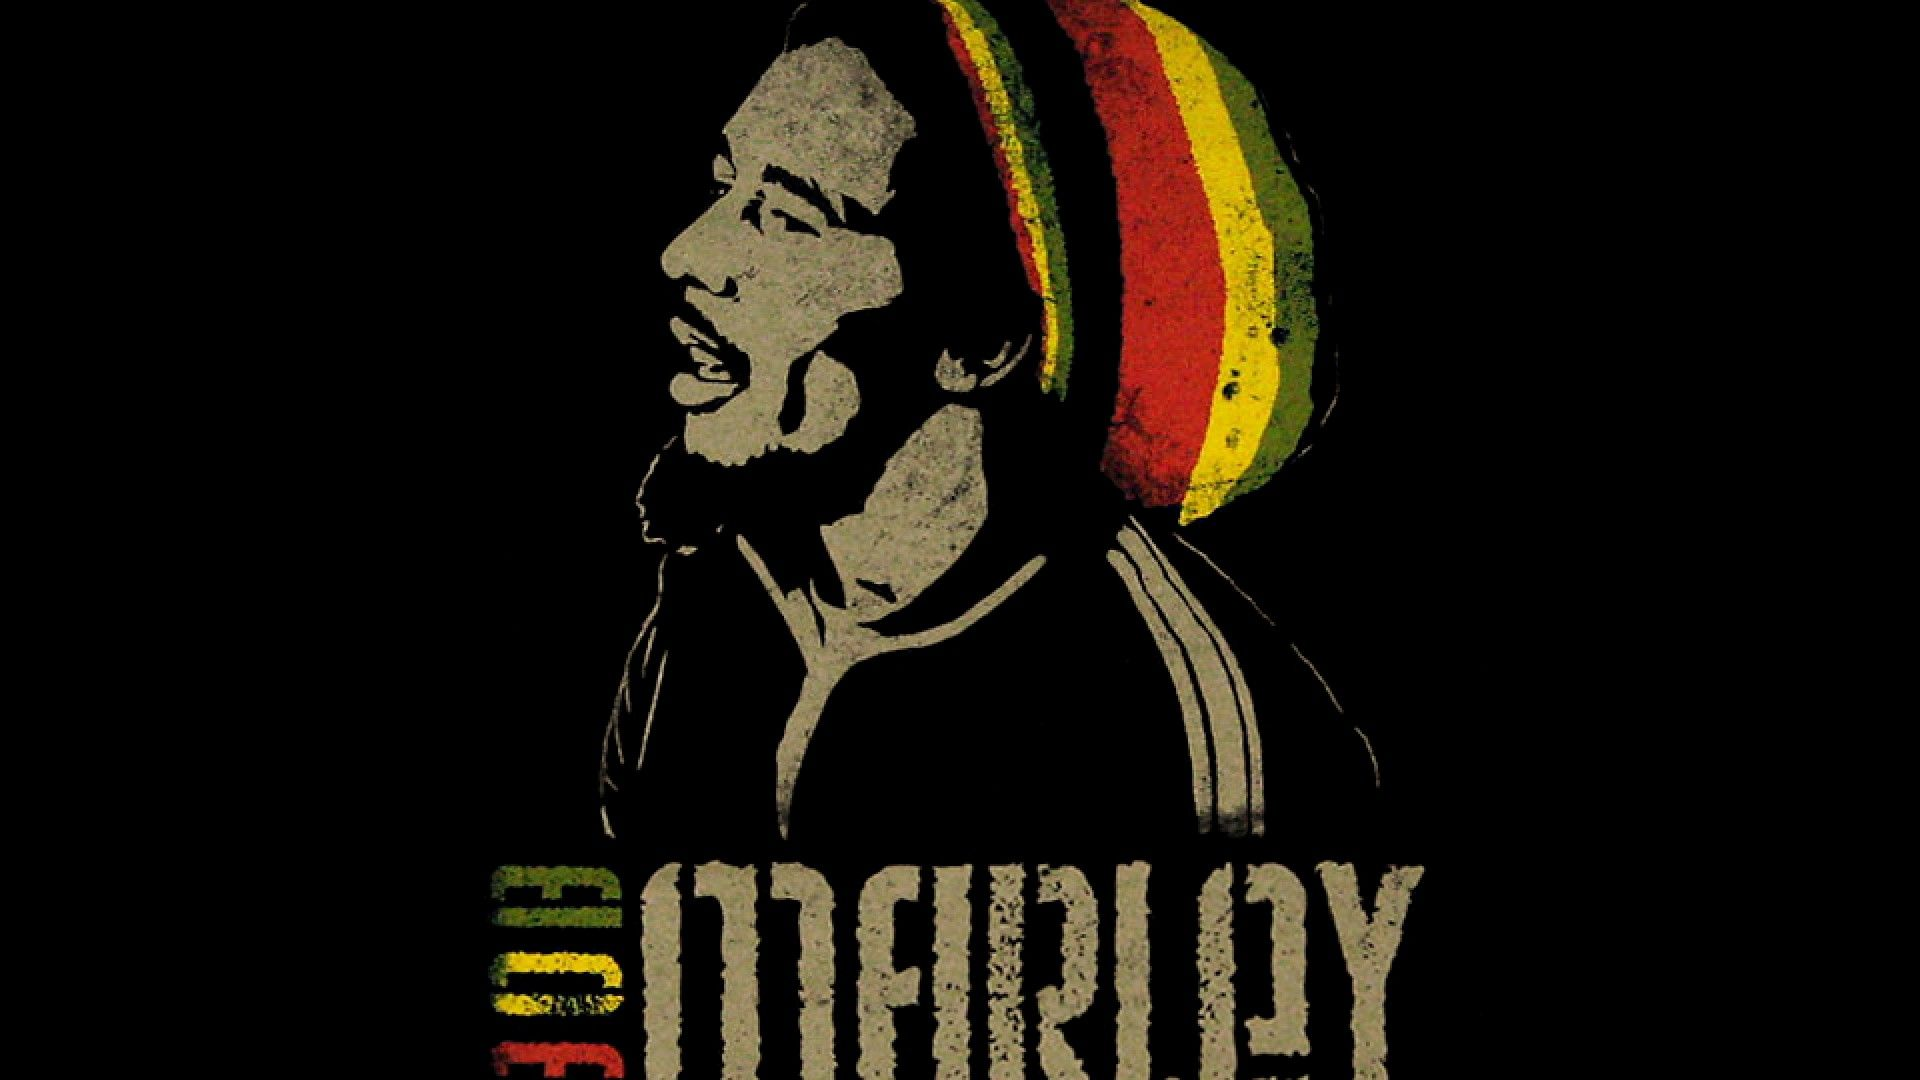 Rasta Hd Fonds Décran 2016 Cave Wallpaper Onelove Pinterest